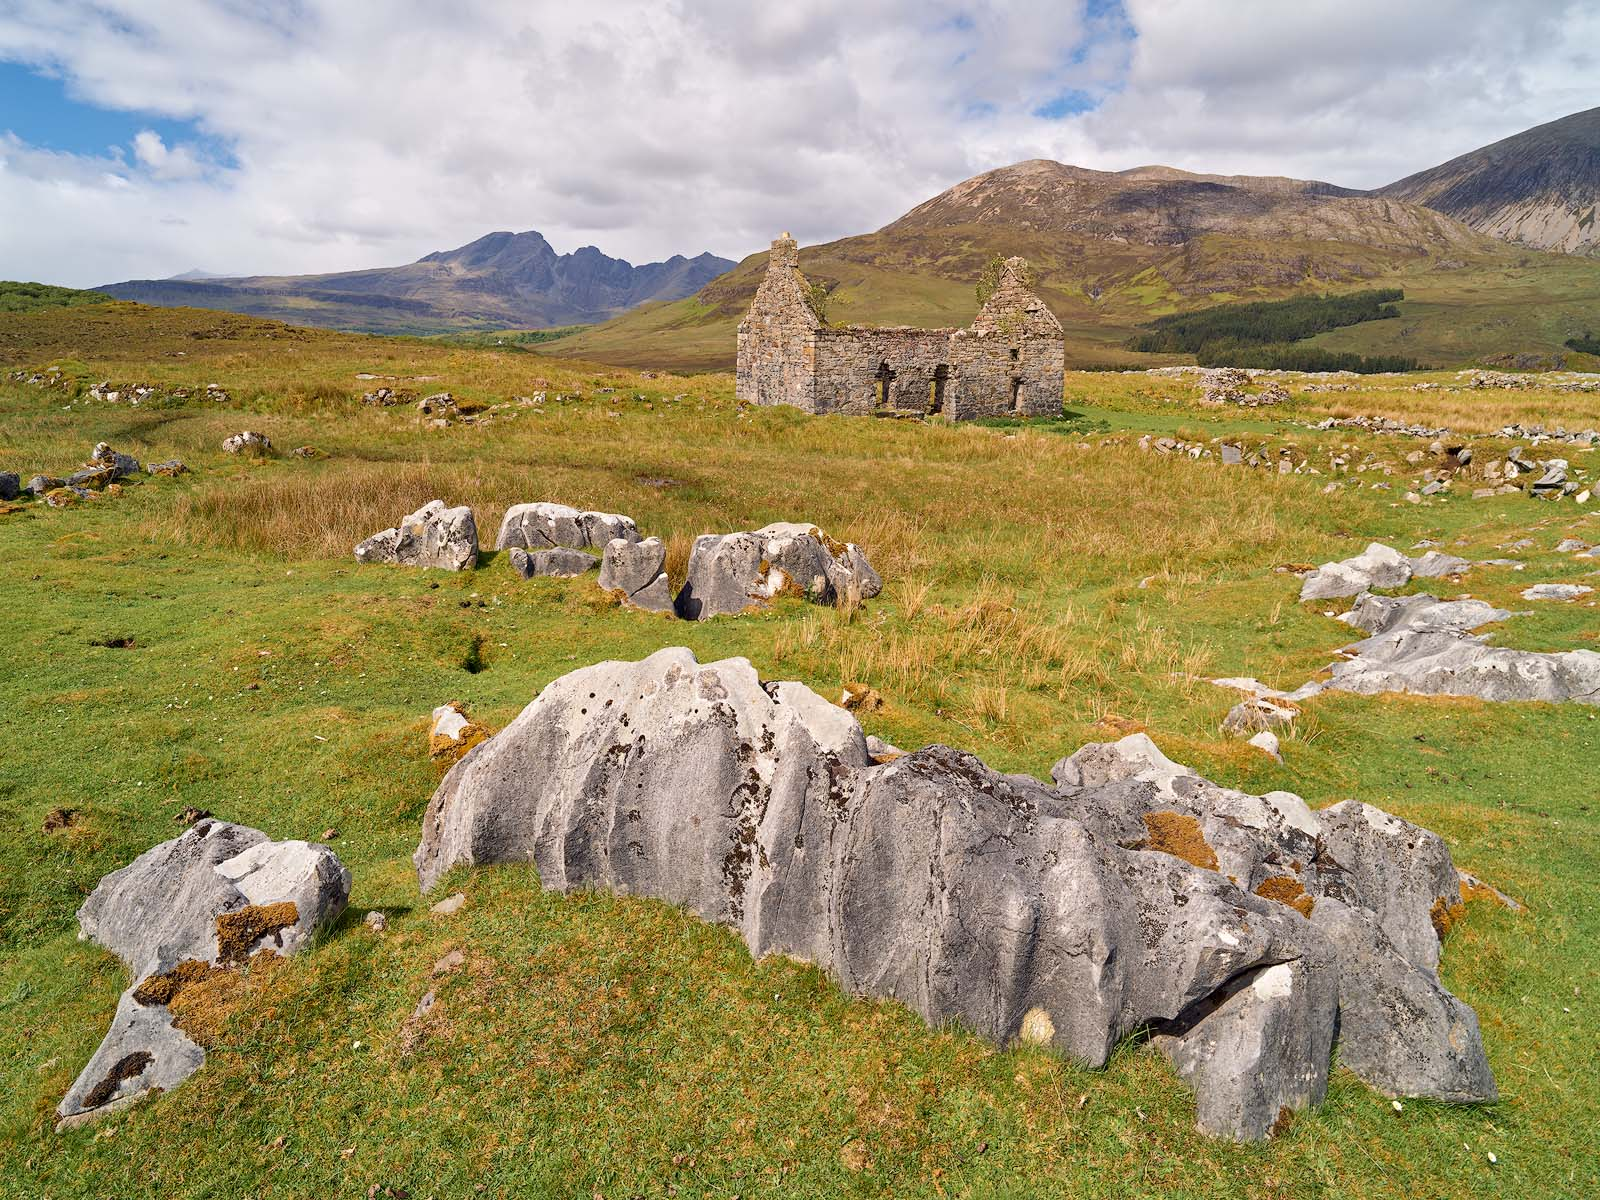 WORLD REGIONS & COUNTRIES, Europe, United Kingdom, Scotland, Isle of Skye, concepts, abandoned, architecture, building materials, marble stone, environment, scenery, land, rural landscape, rural, rock, photo